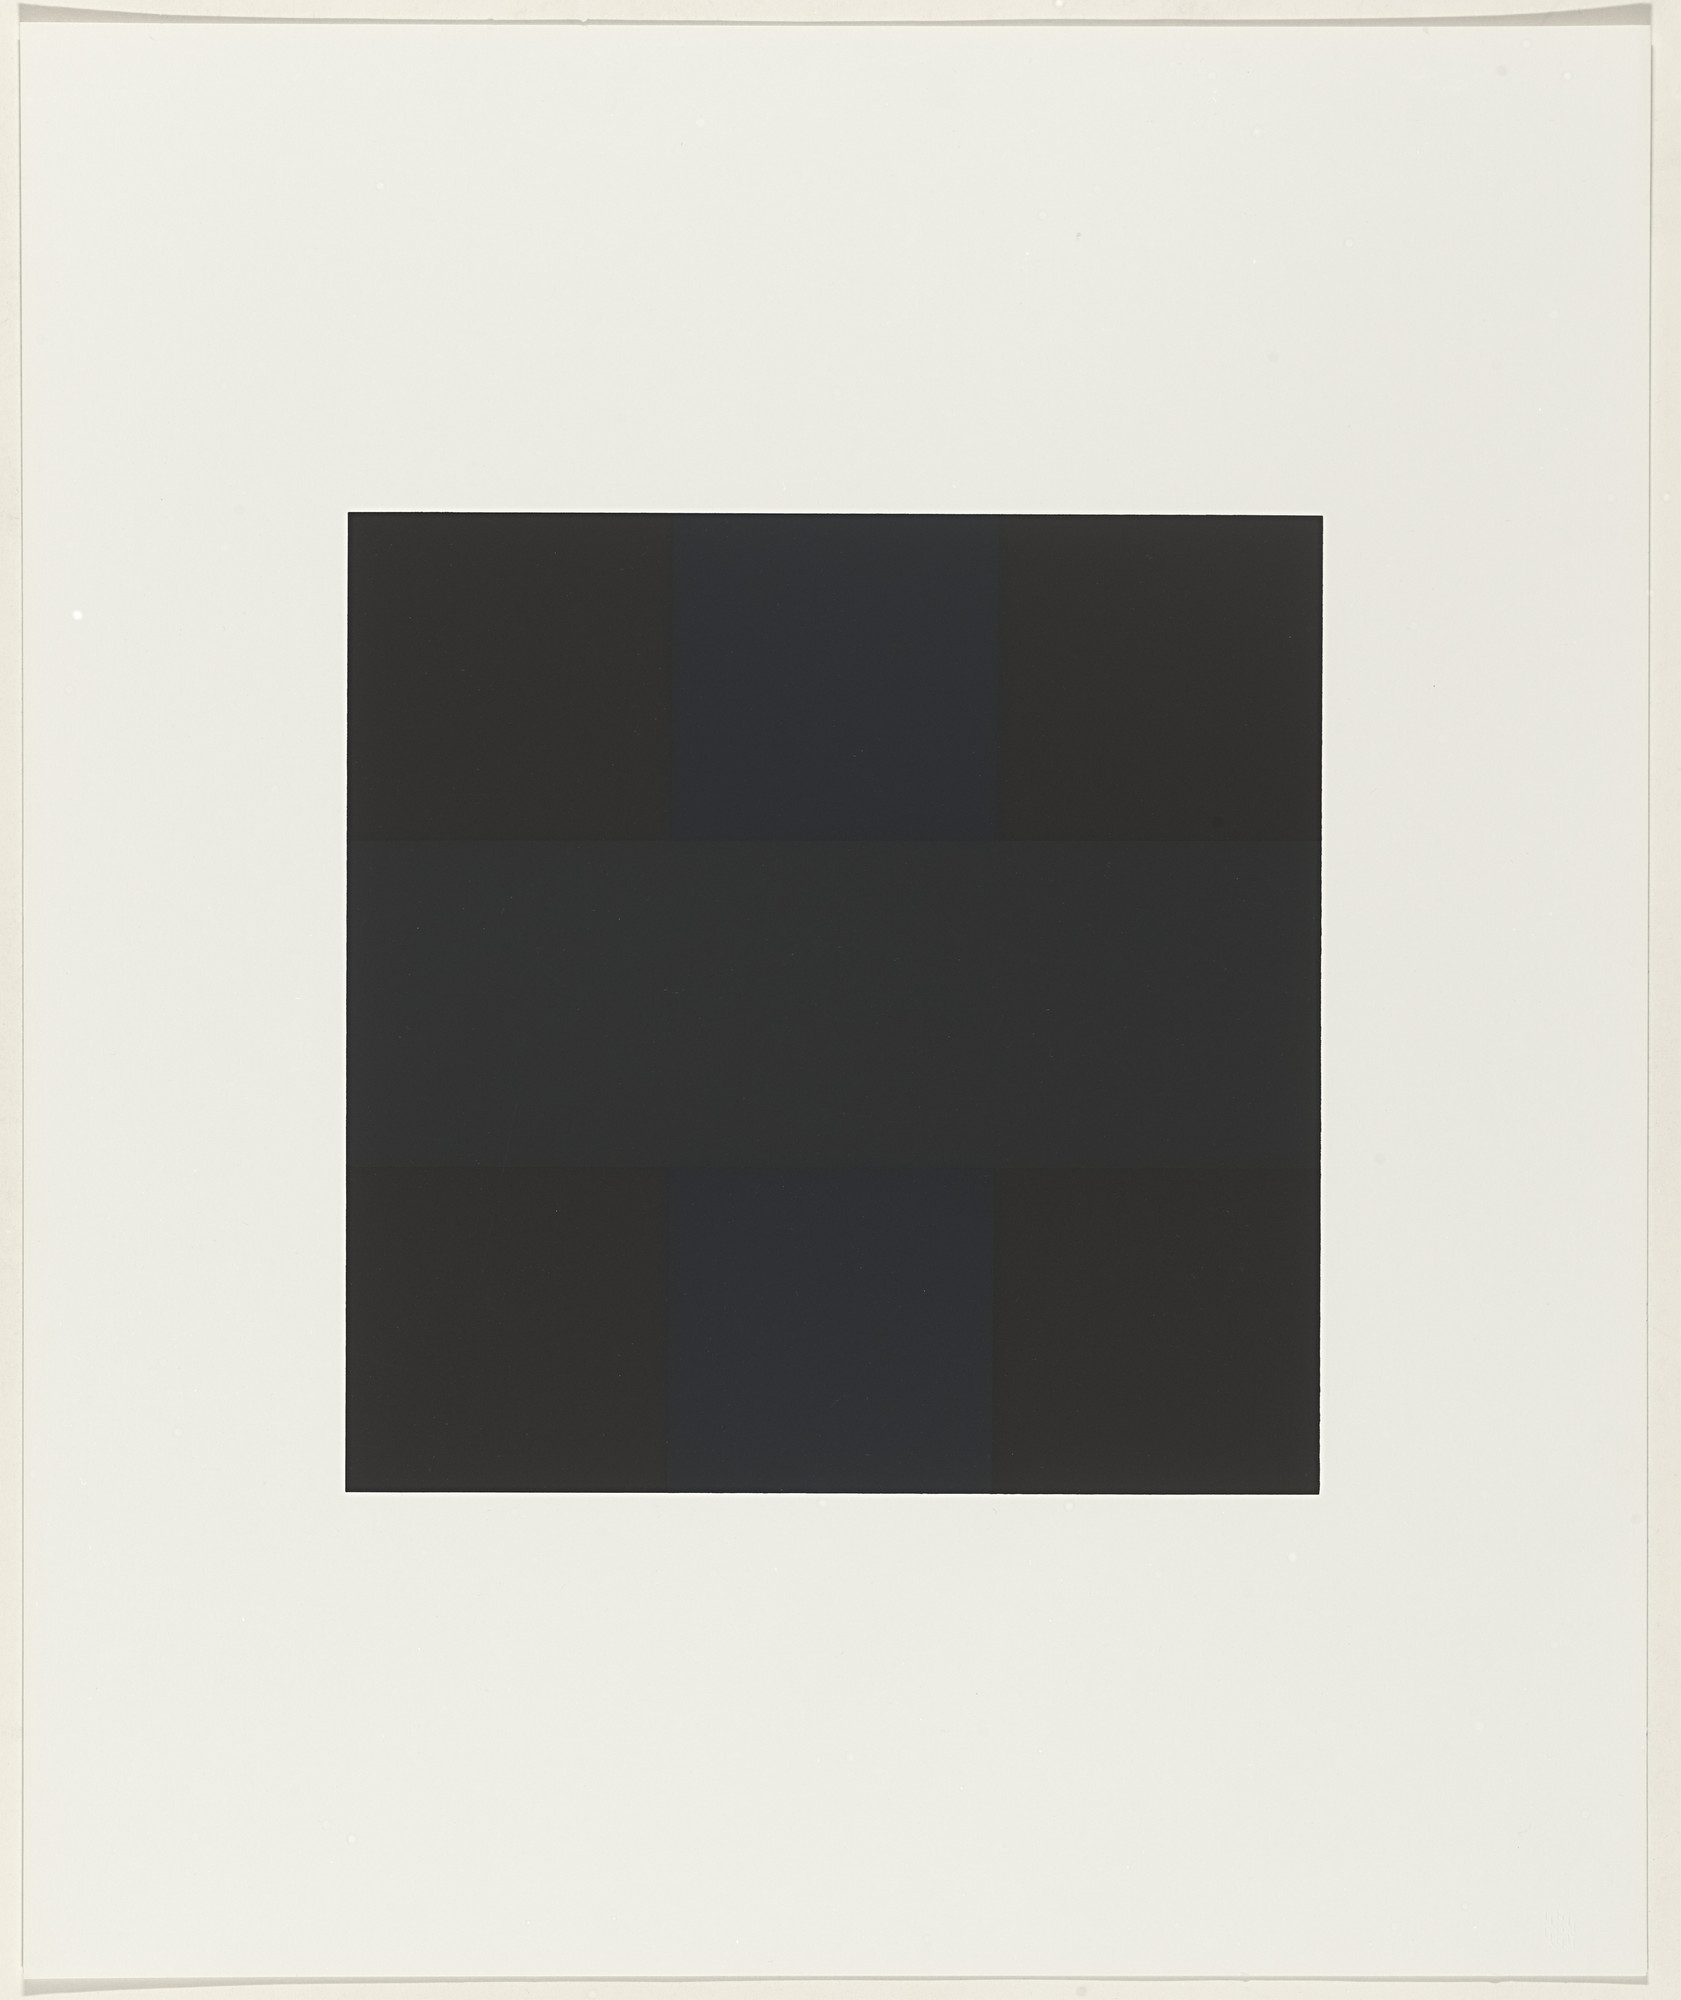 Ad Reinhardt. Untitled from X + X (Ten Works by Ten Painters). 1964